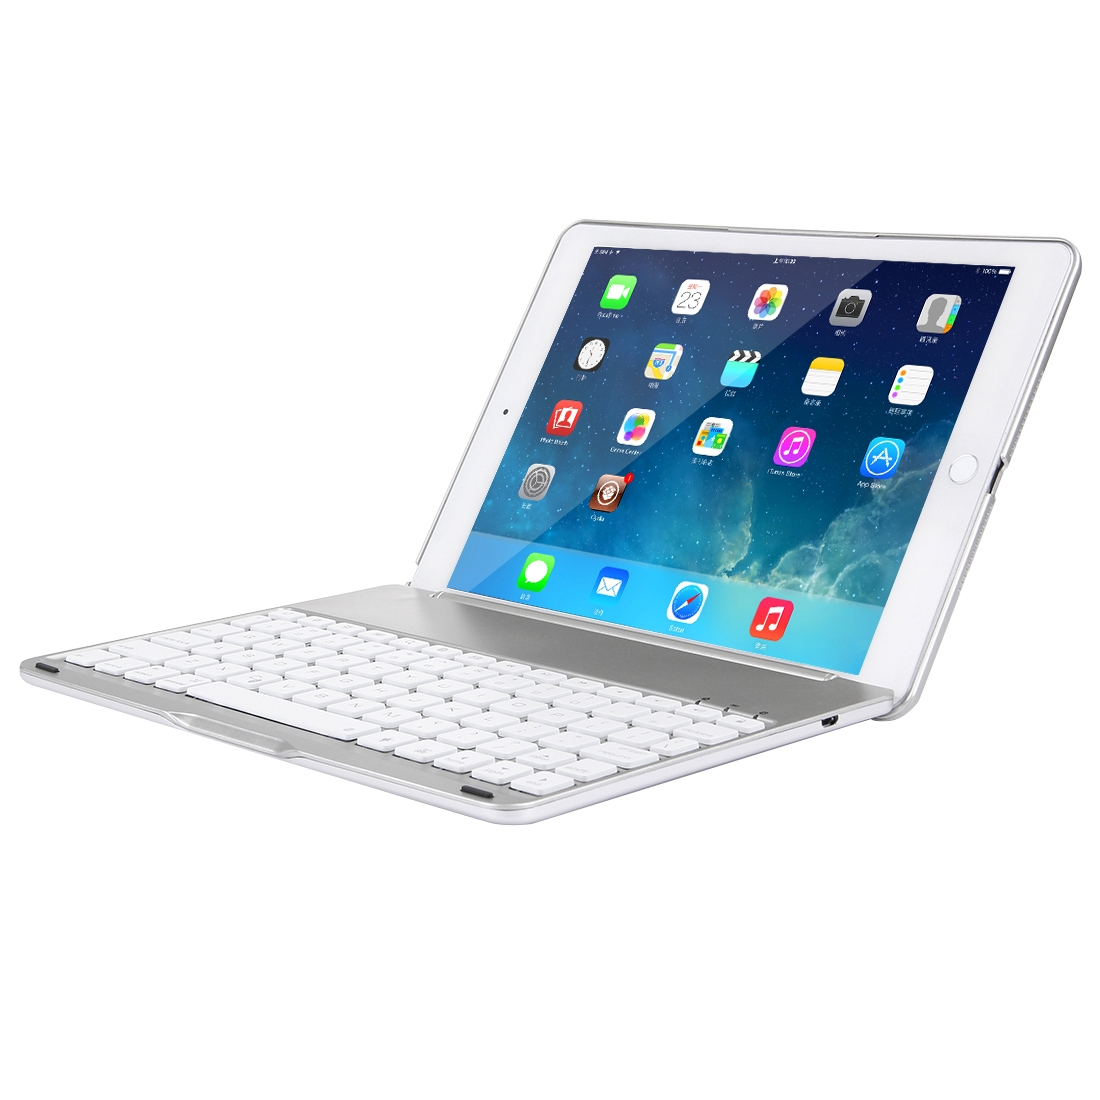 iPad Air 2 Case With Keyboard For iPad Air 2, Protective Case With Backlit Bluetooth (Silver)